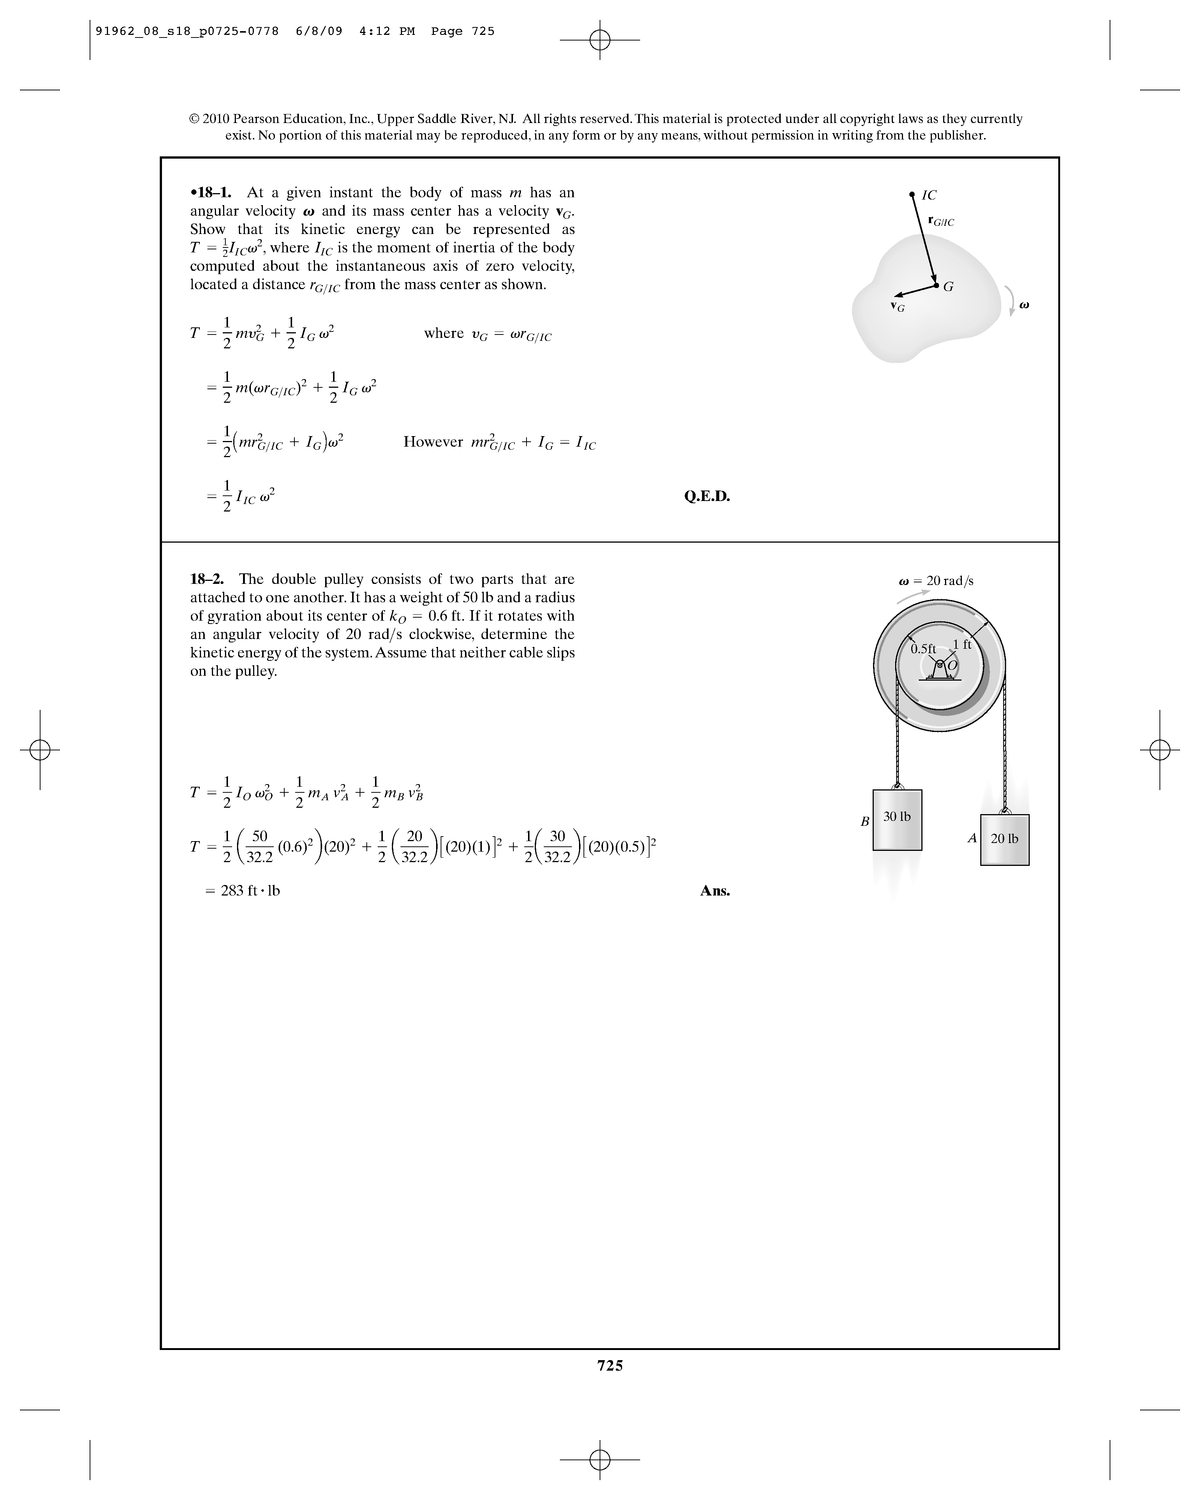 chapter 10 solutions manual cabrillo